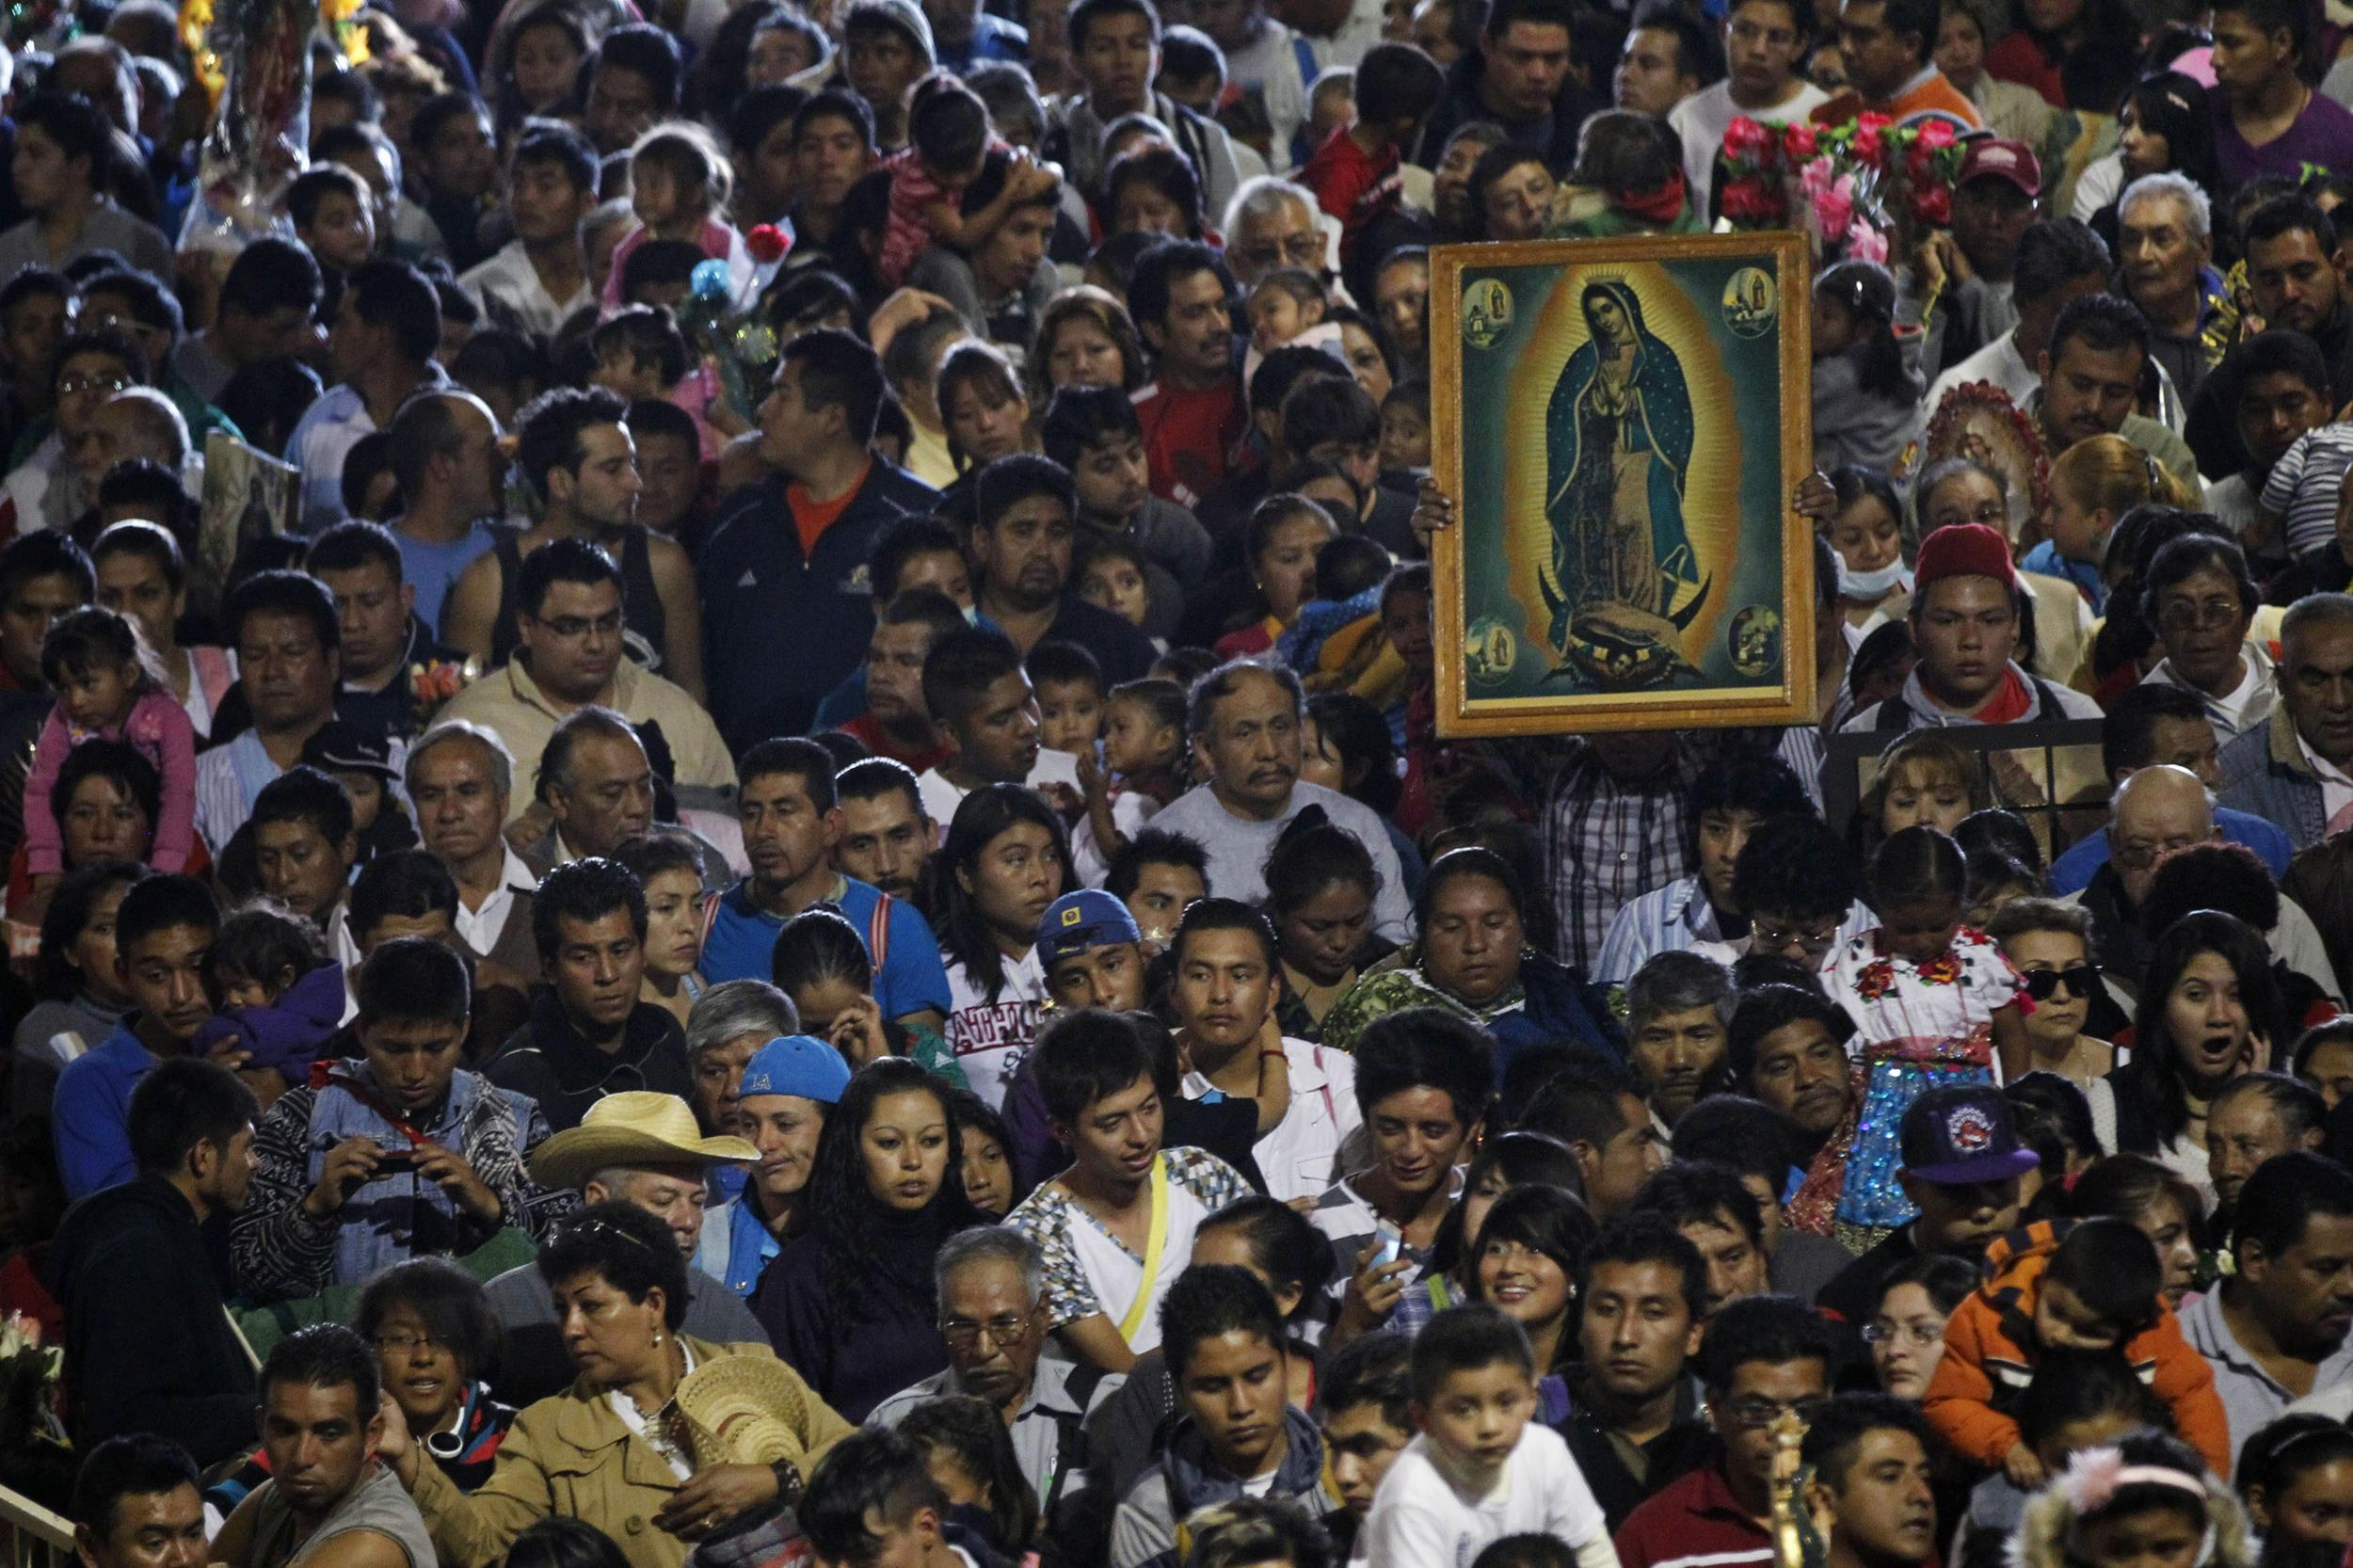 A pilgrim carries a picture of the Virgin of Guadalupe amid the crowd at the Basilica in Mexico City